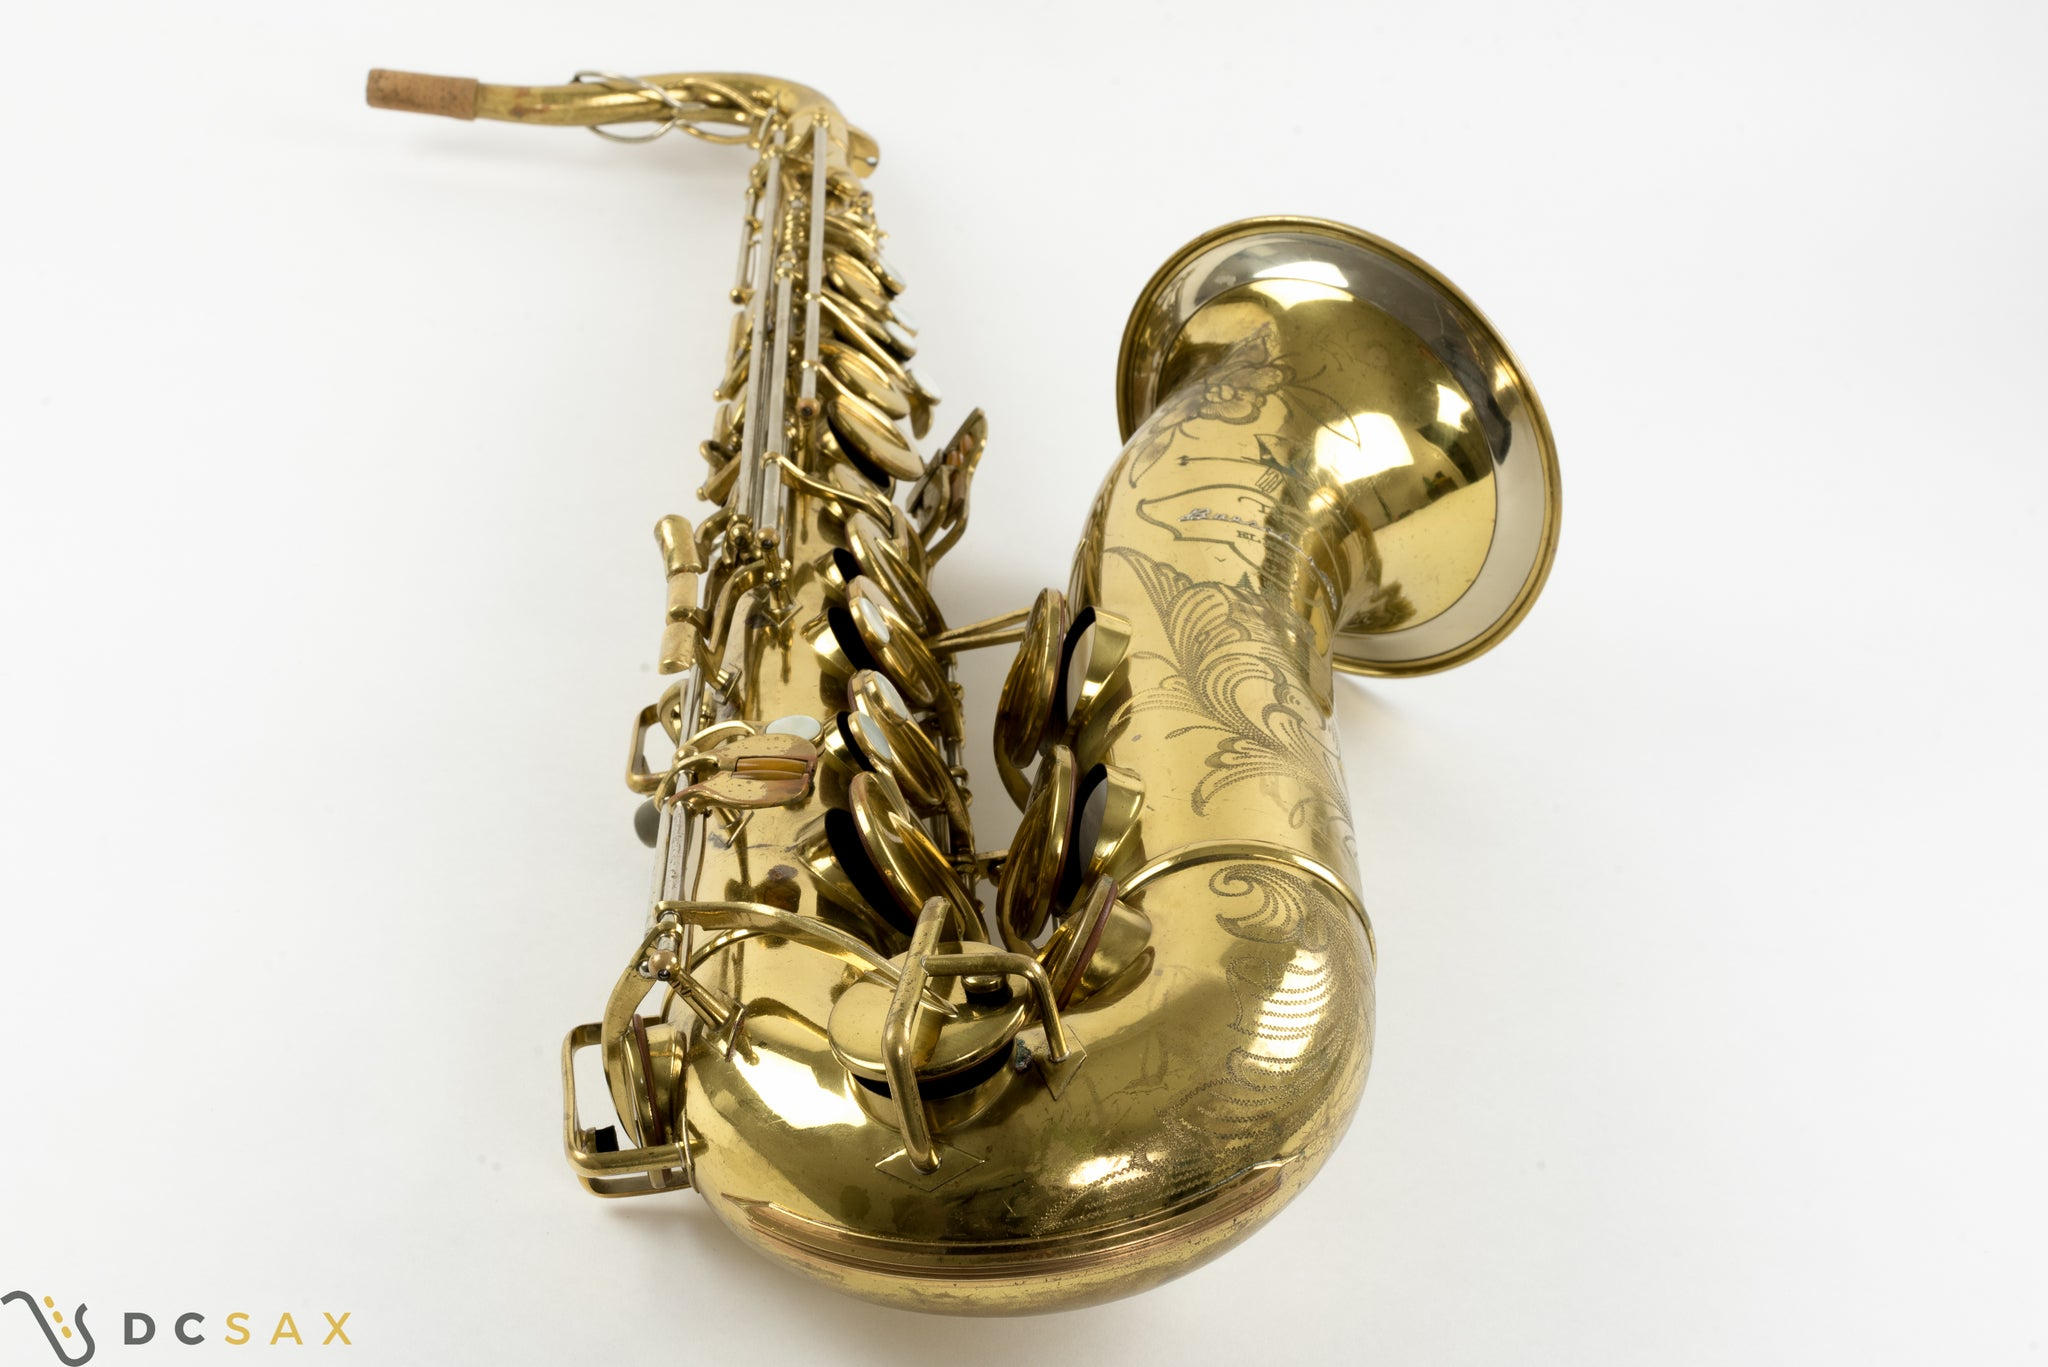 1948 Buescher 400 Top Hat and Cane Tenor Saxophone, 97% Original Lacquer